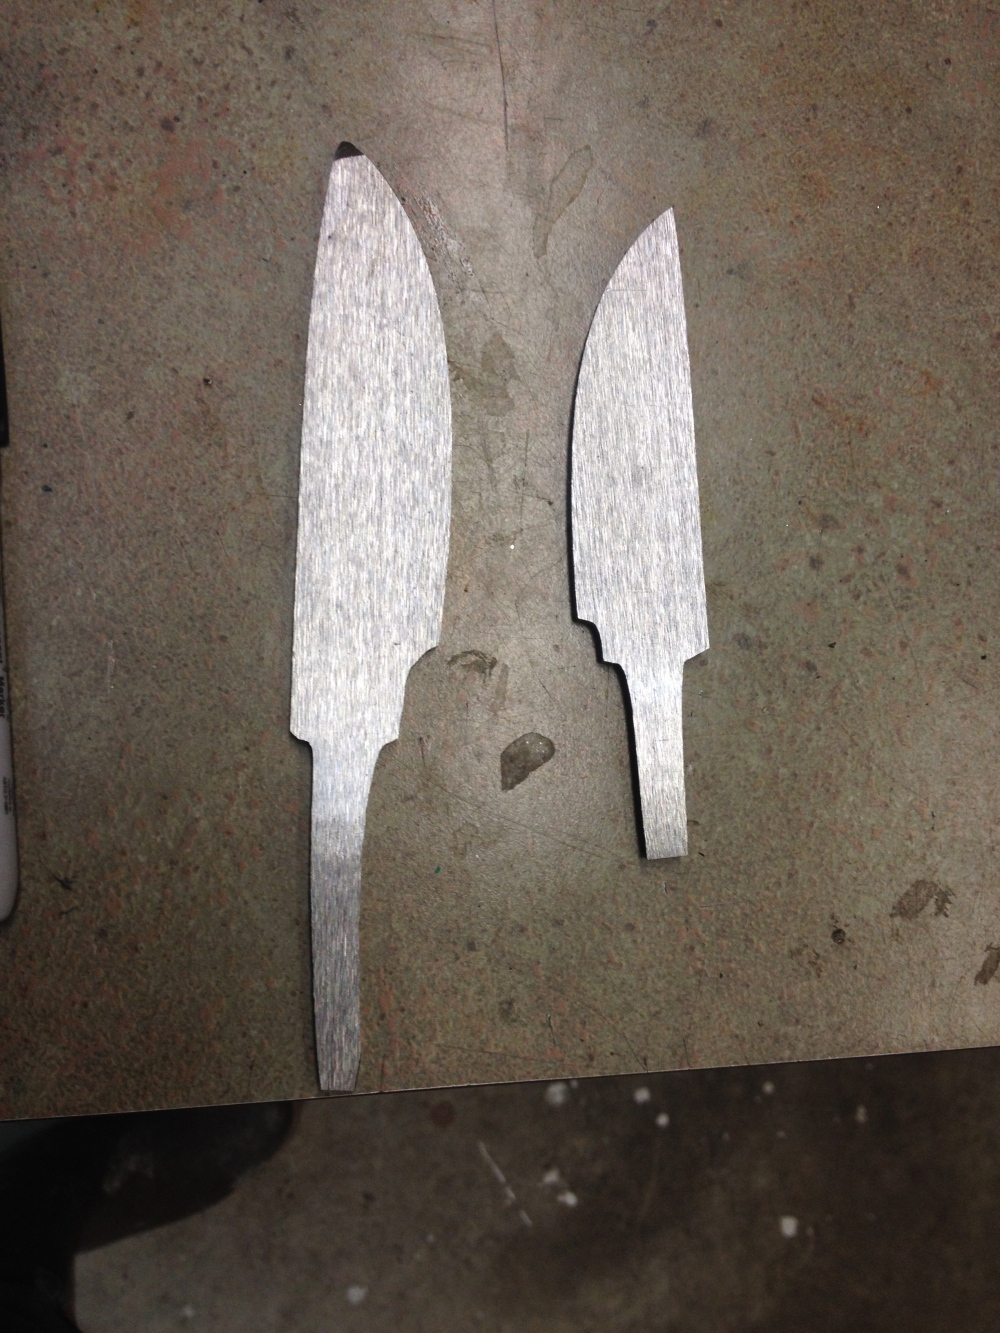 Cut out , flattened and shaped.